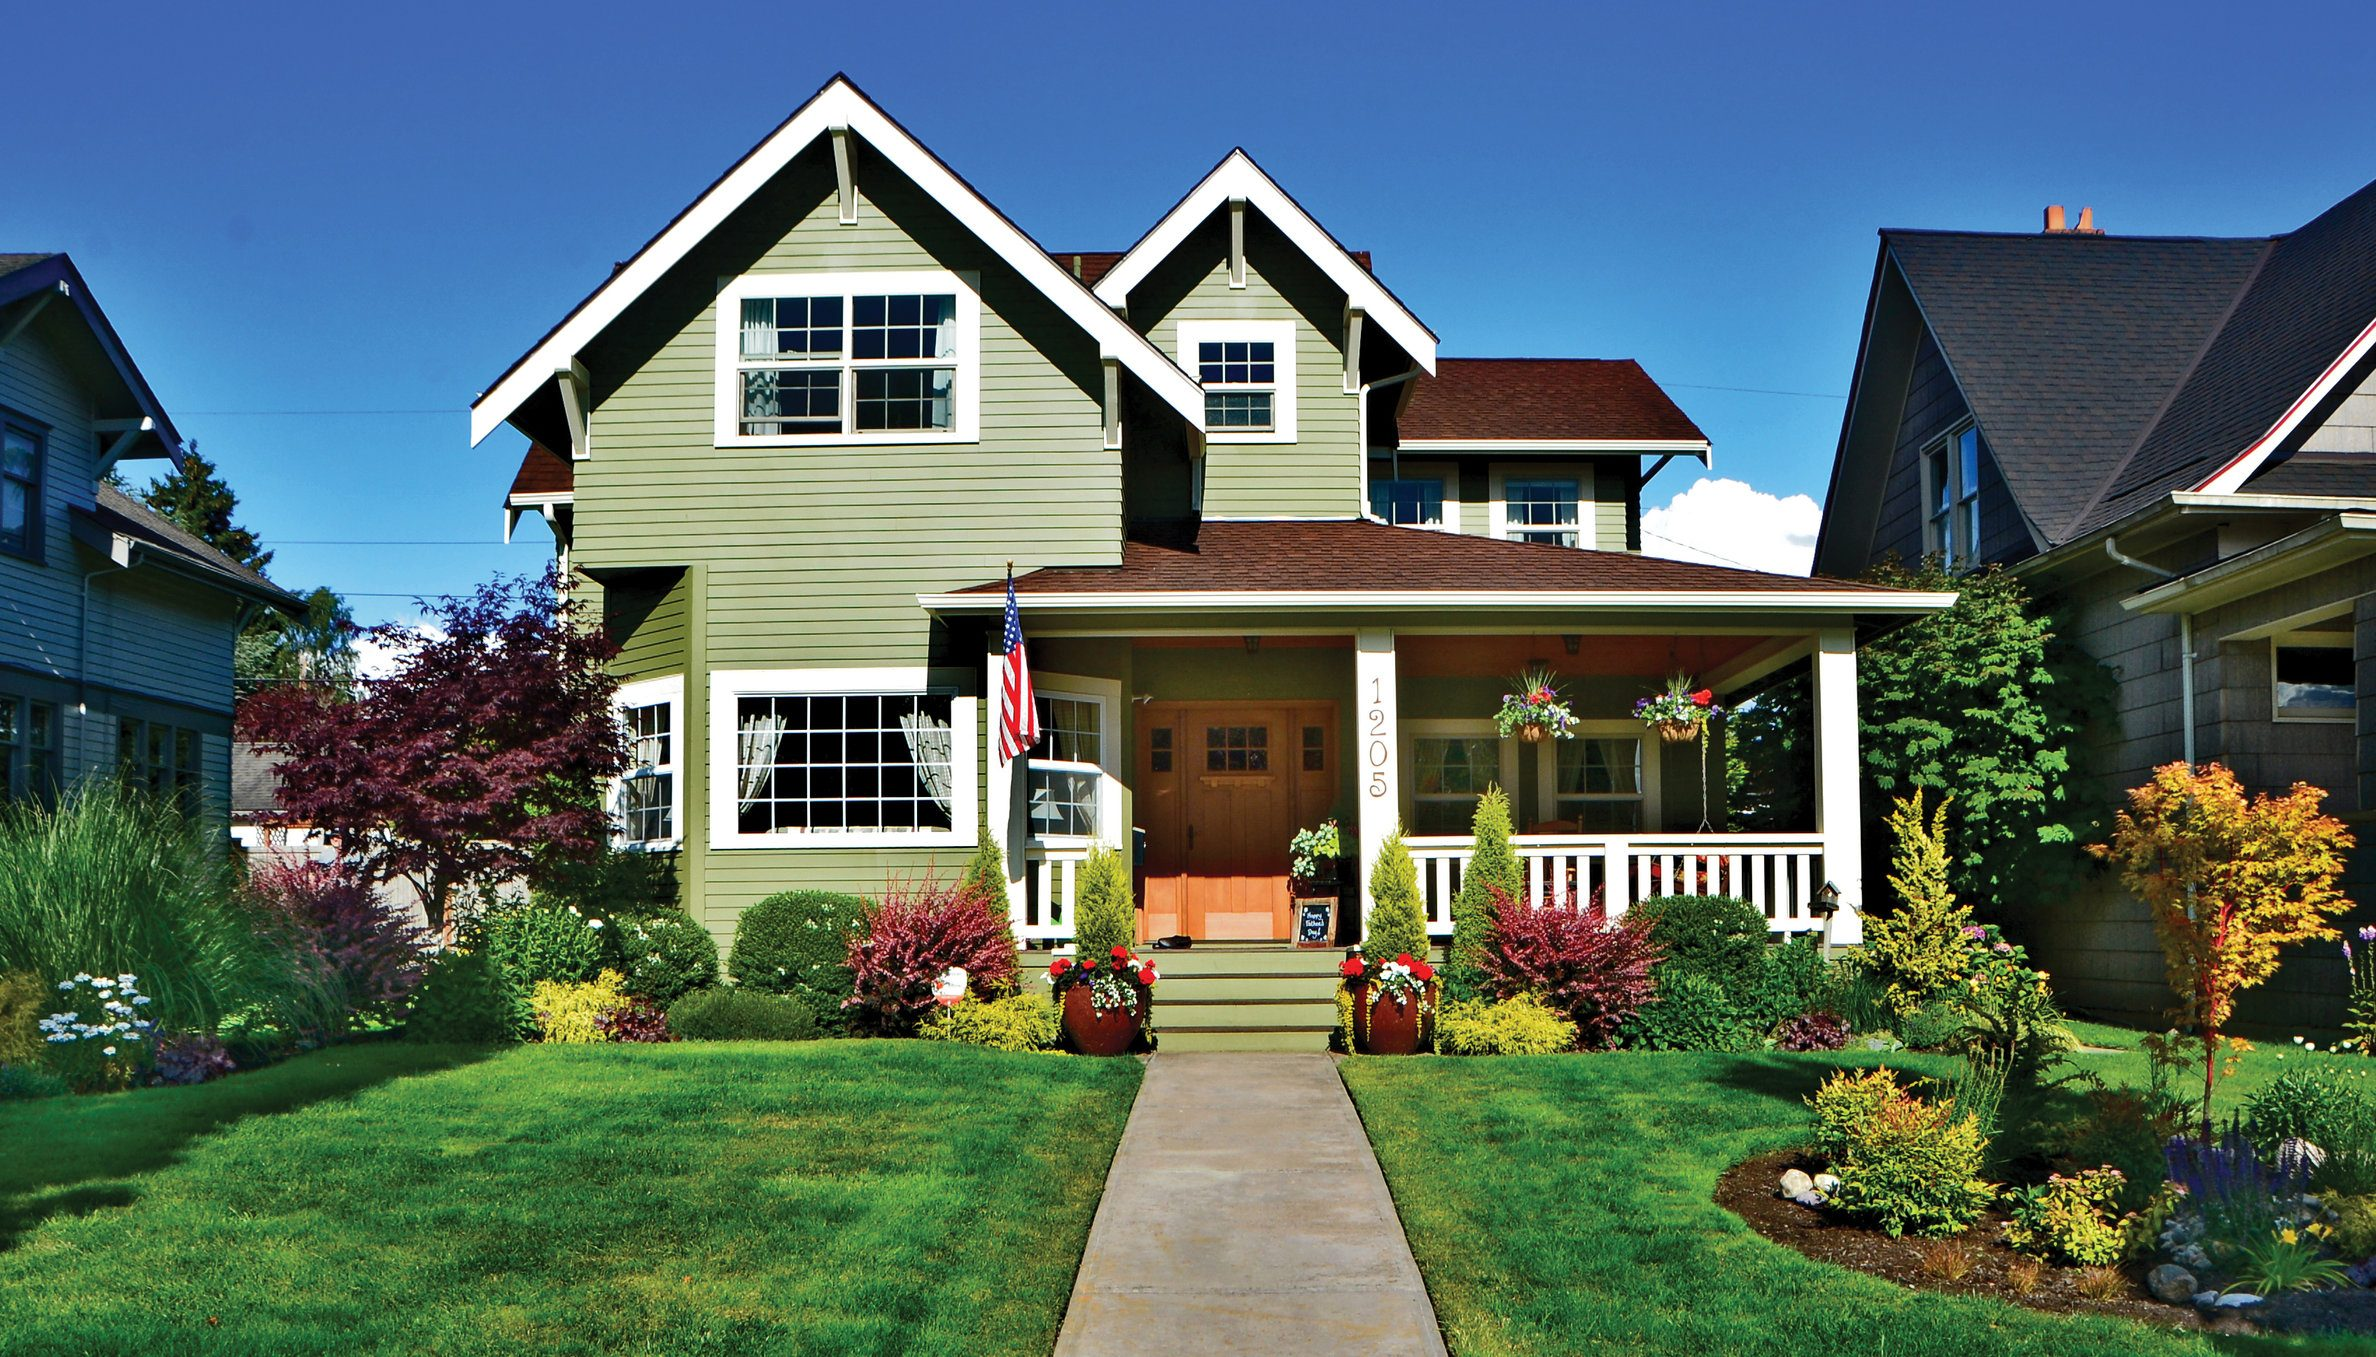 Best seattle suburbs for affordable homes seattle magazine for Affordable house builders